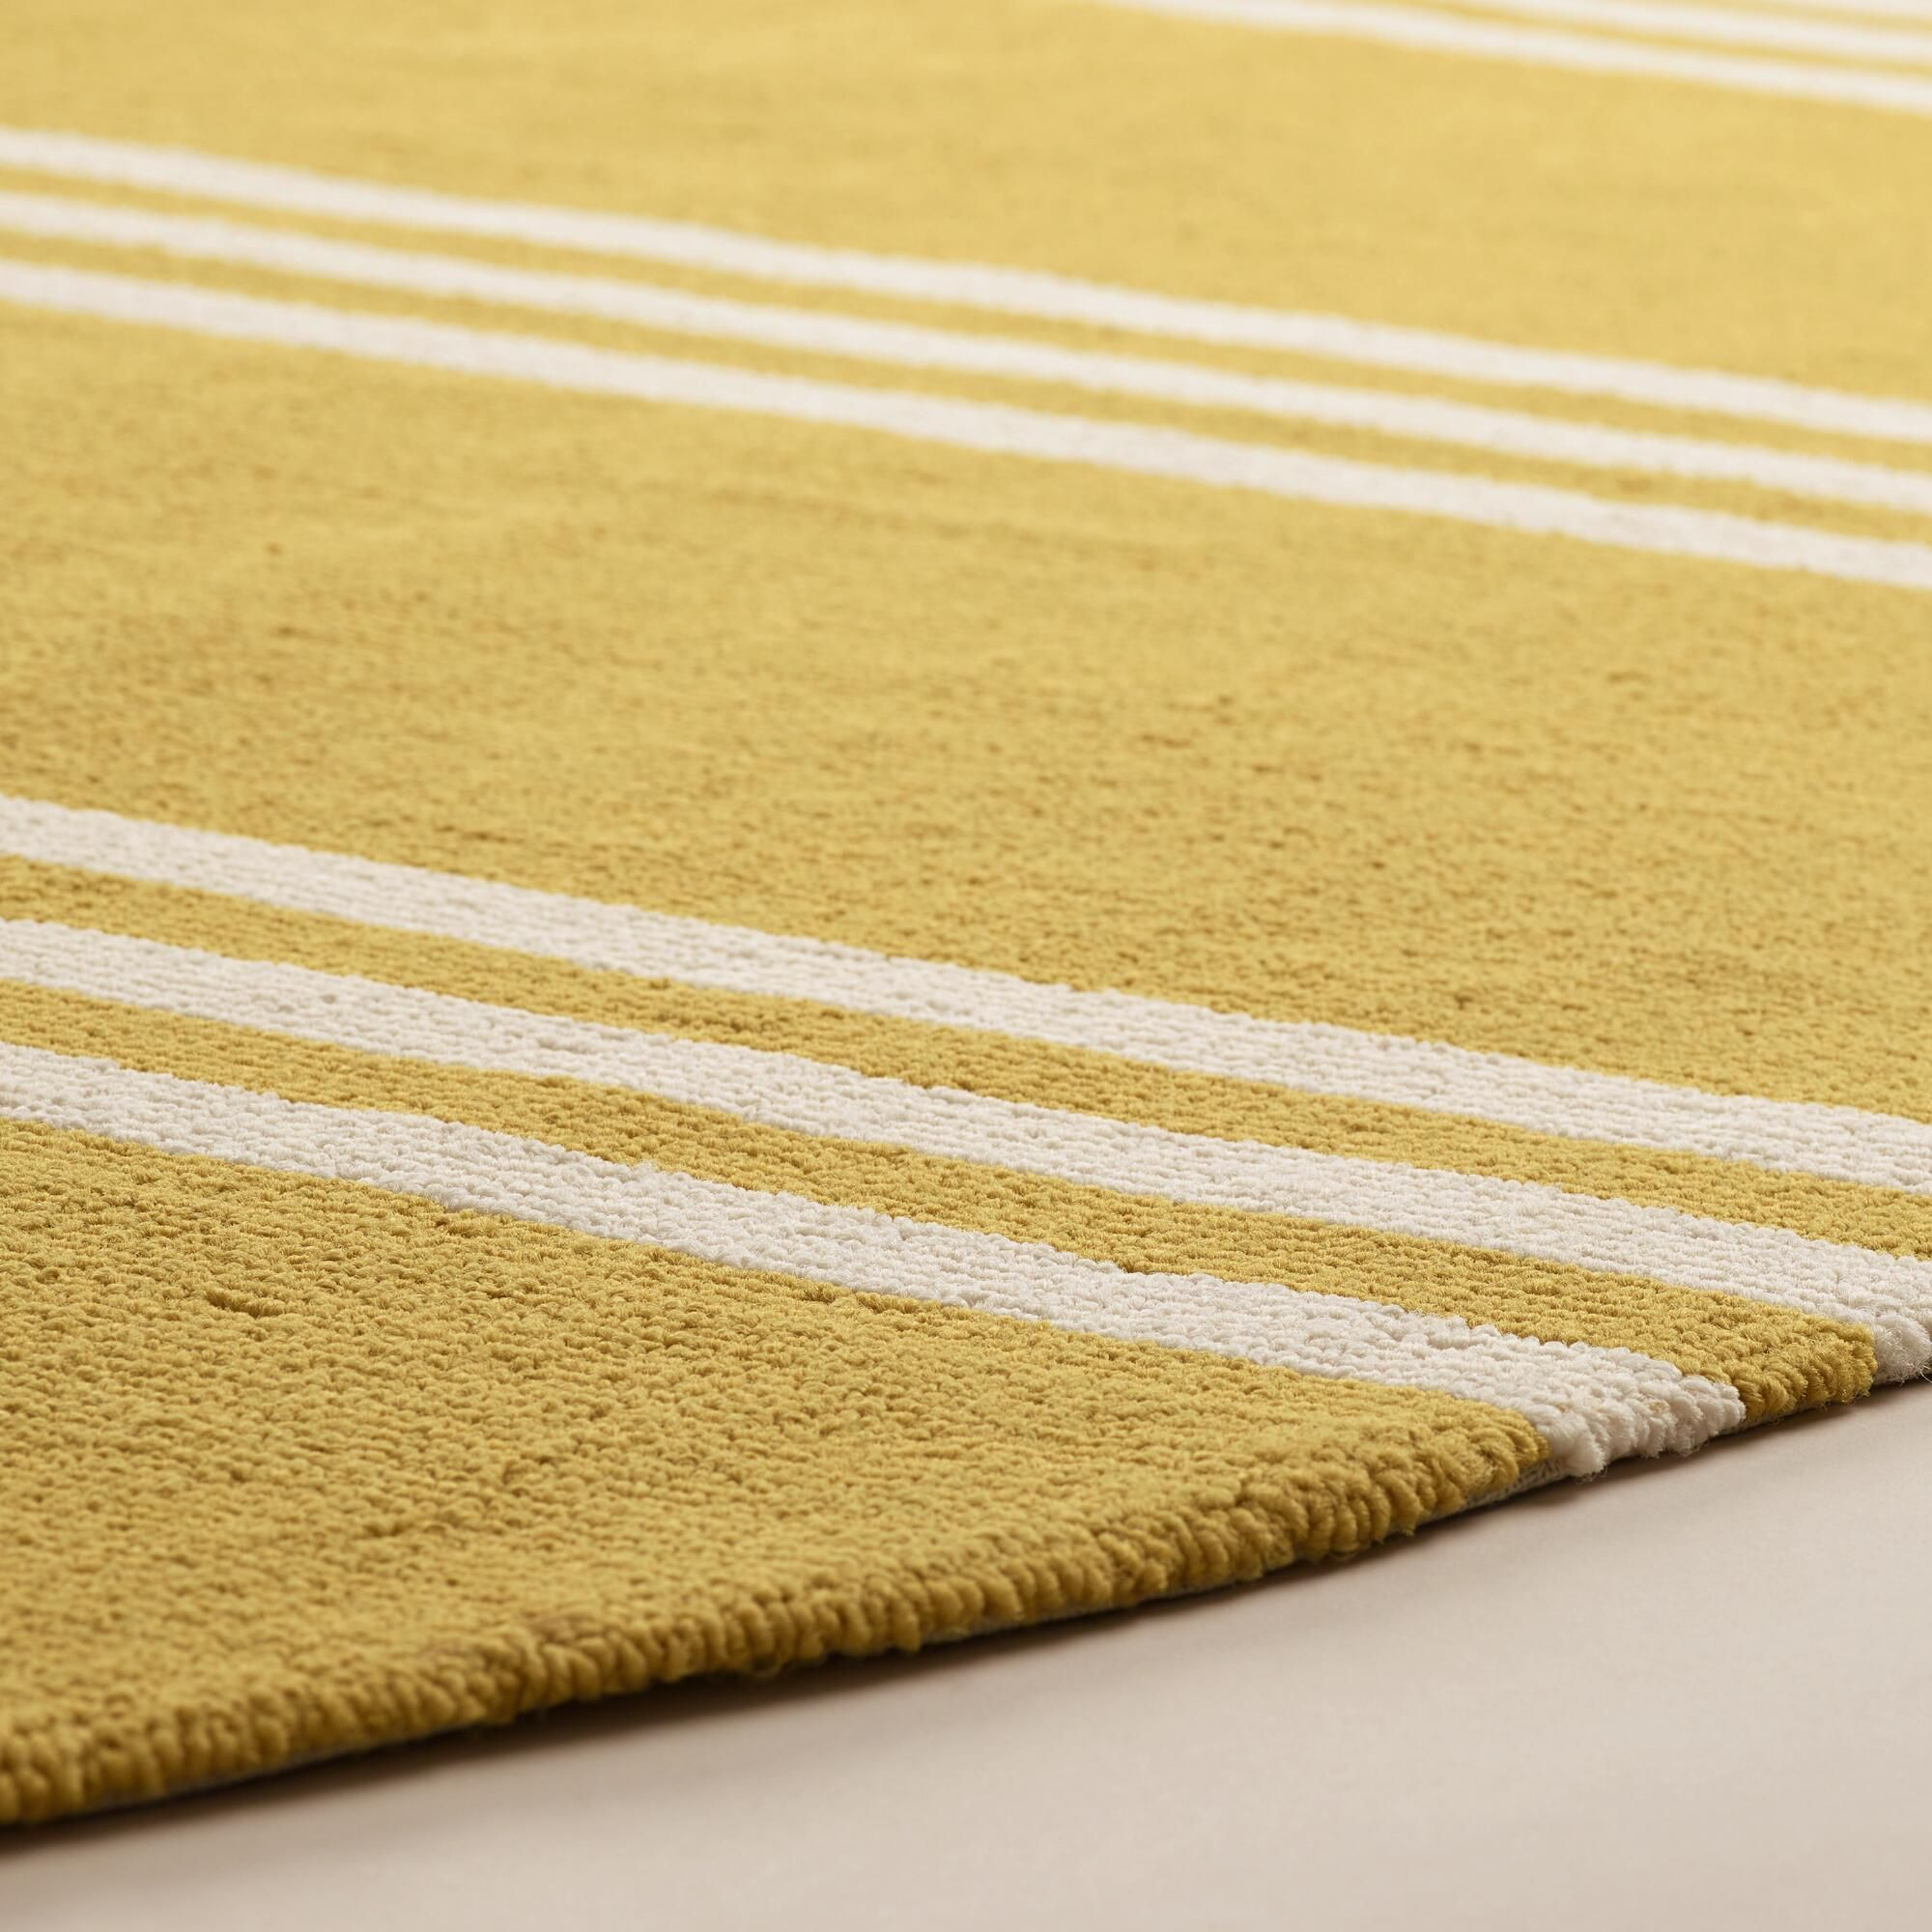 Hand hooked of antimicrobial yarn with a simple, sophisticated design in a refreshing yellow hue, our versatile area rug is resistant to stain and mildew, UV protected and easy to clean, making it a natural choice for high-traffic areas.